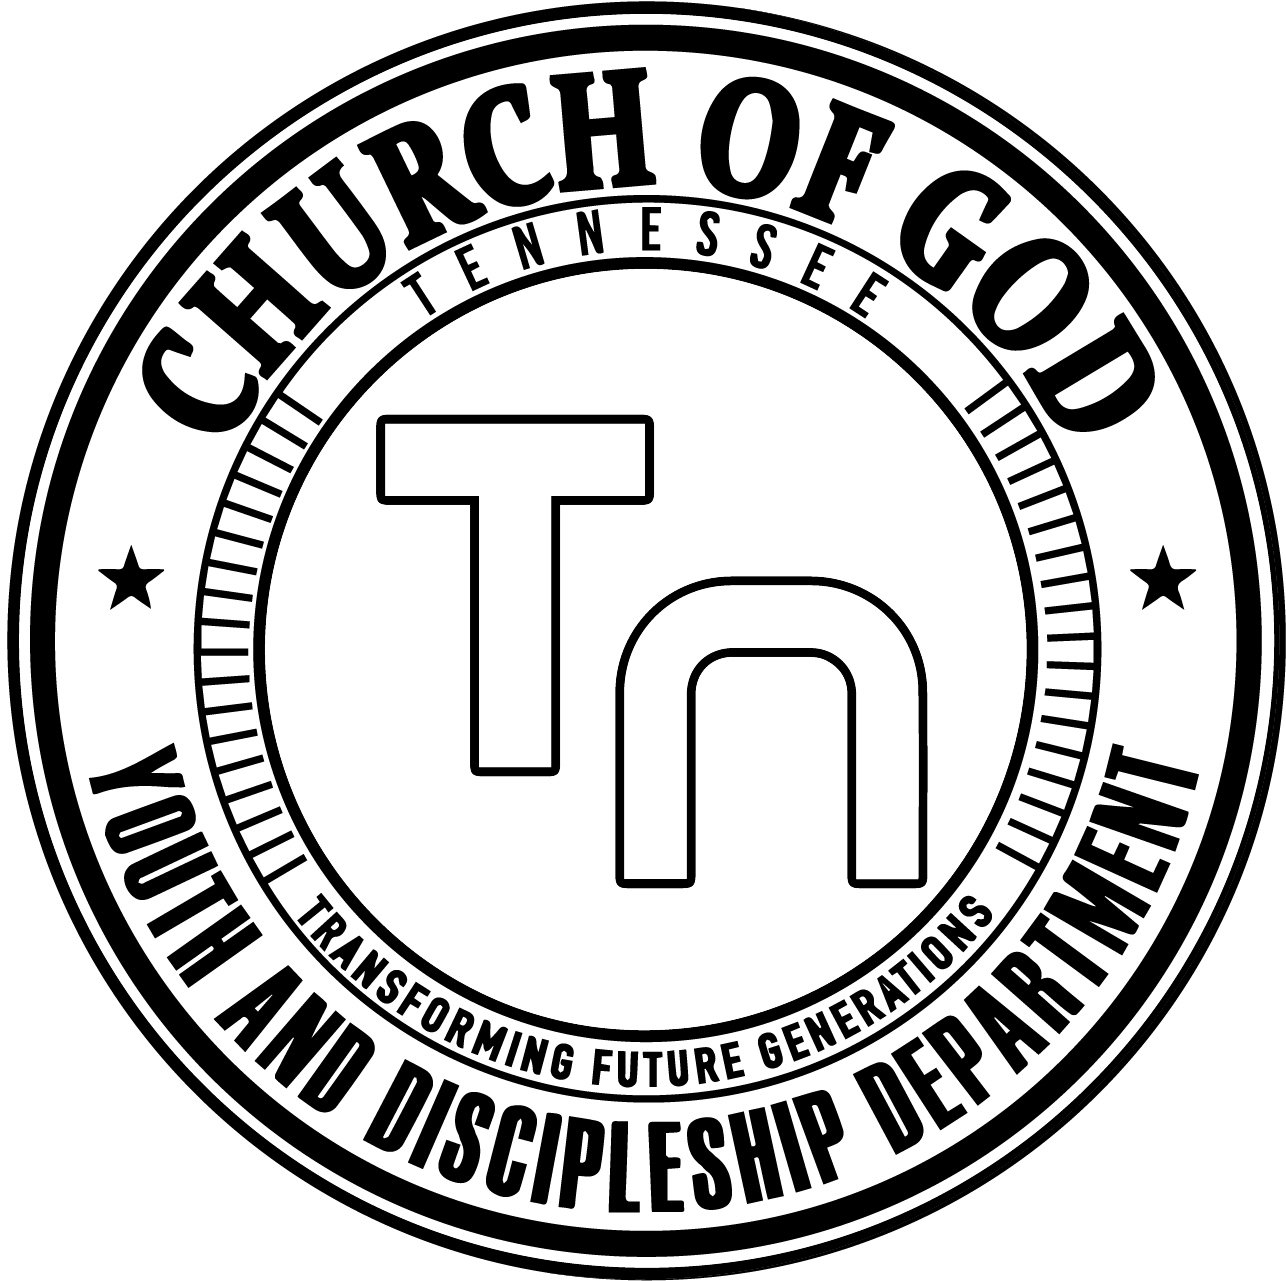 Tennessee Church of God Youth and Discipleship Department